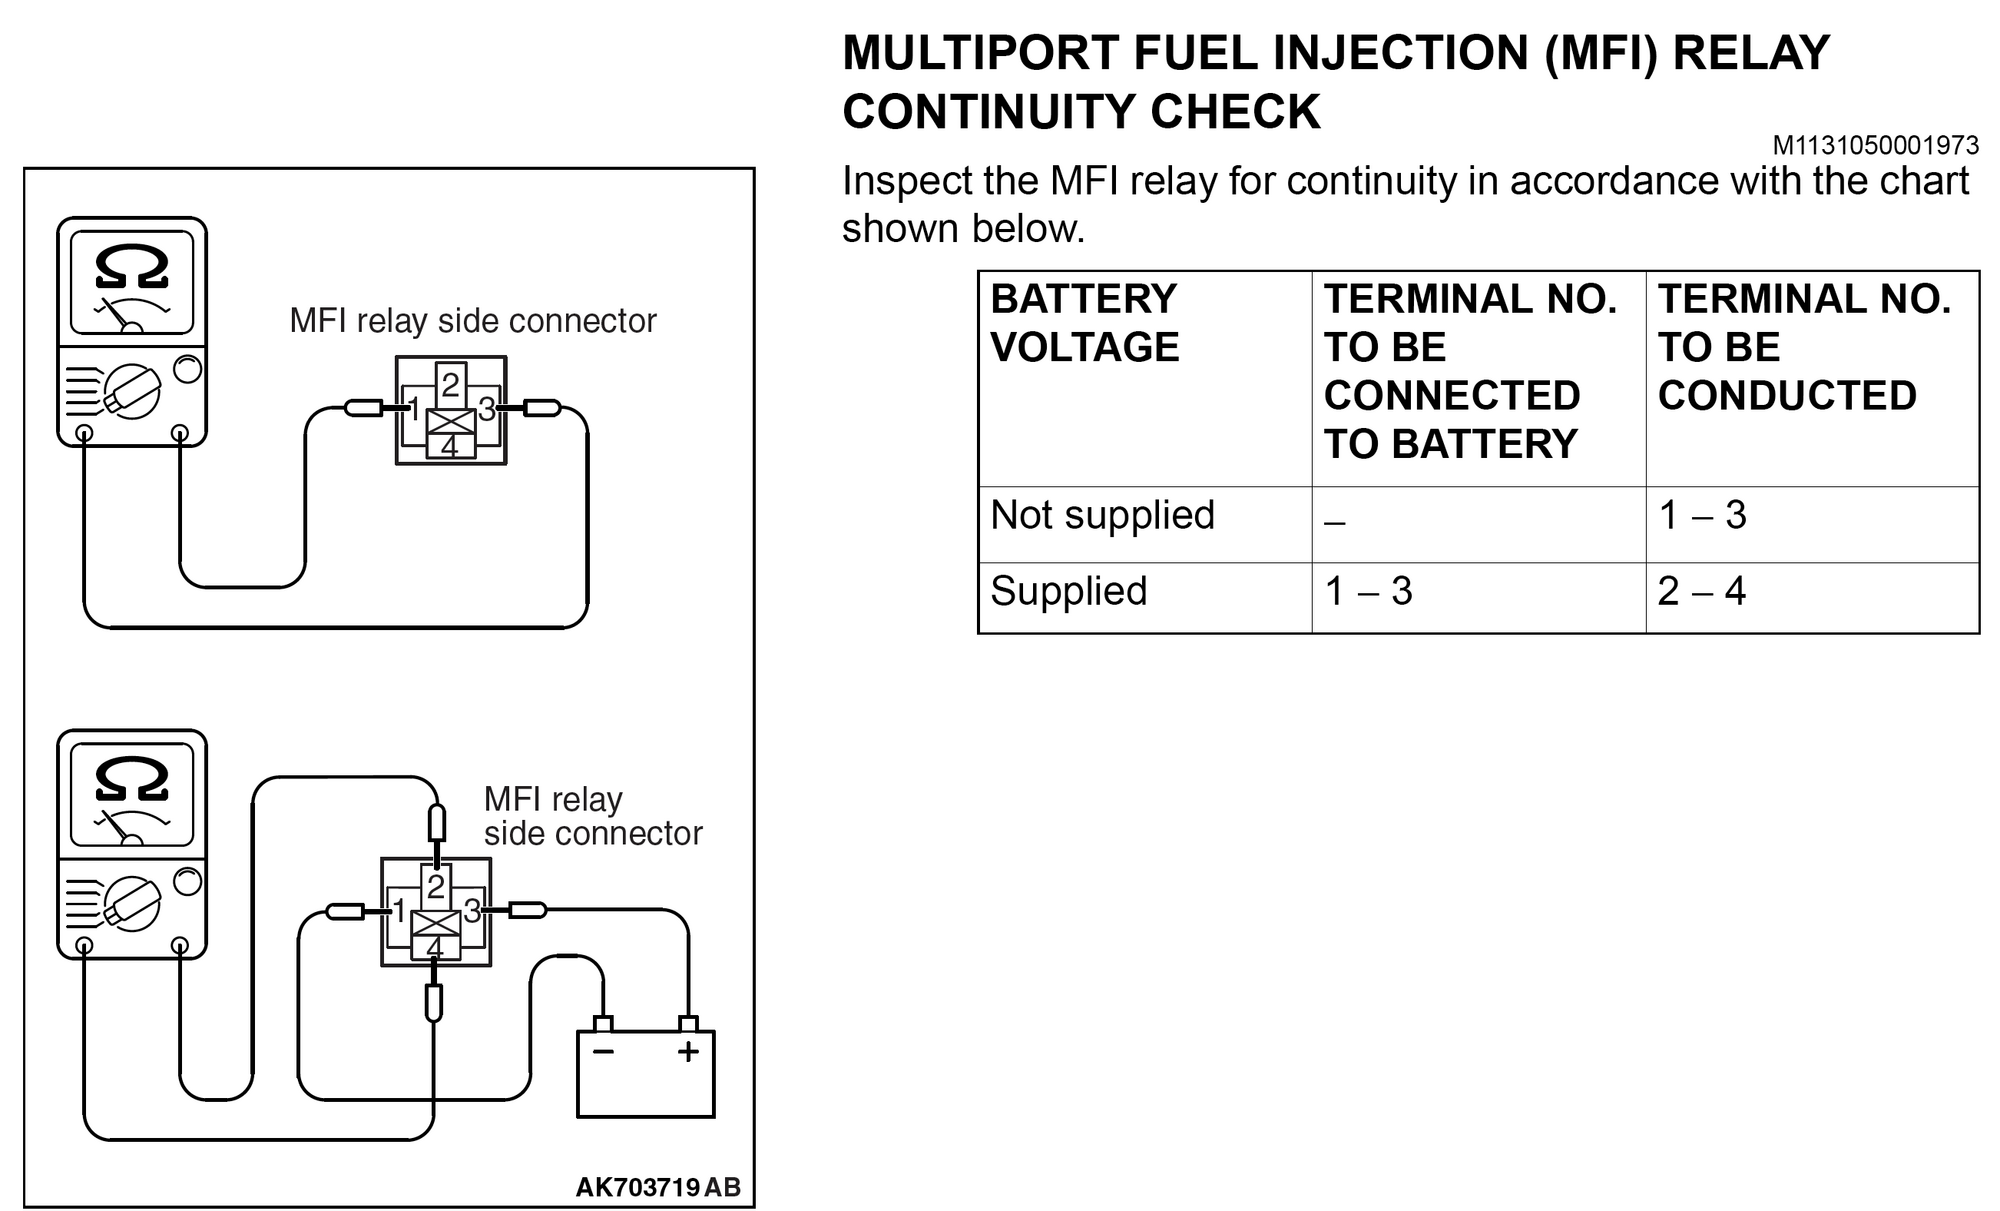 2014 Outlander Sport No-start  Fuel Pump Wiring - Mitsubishi Forum